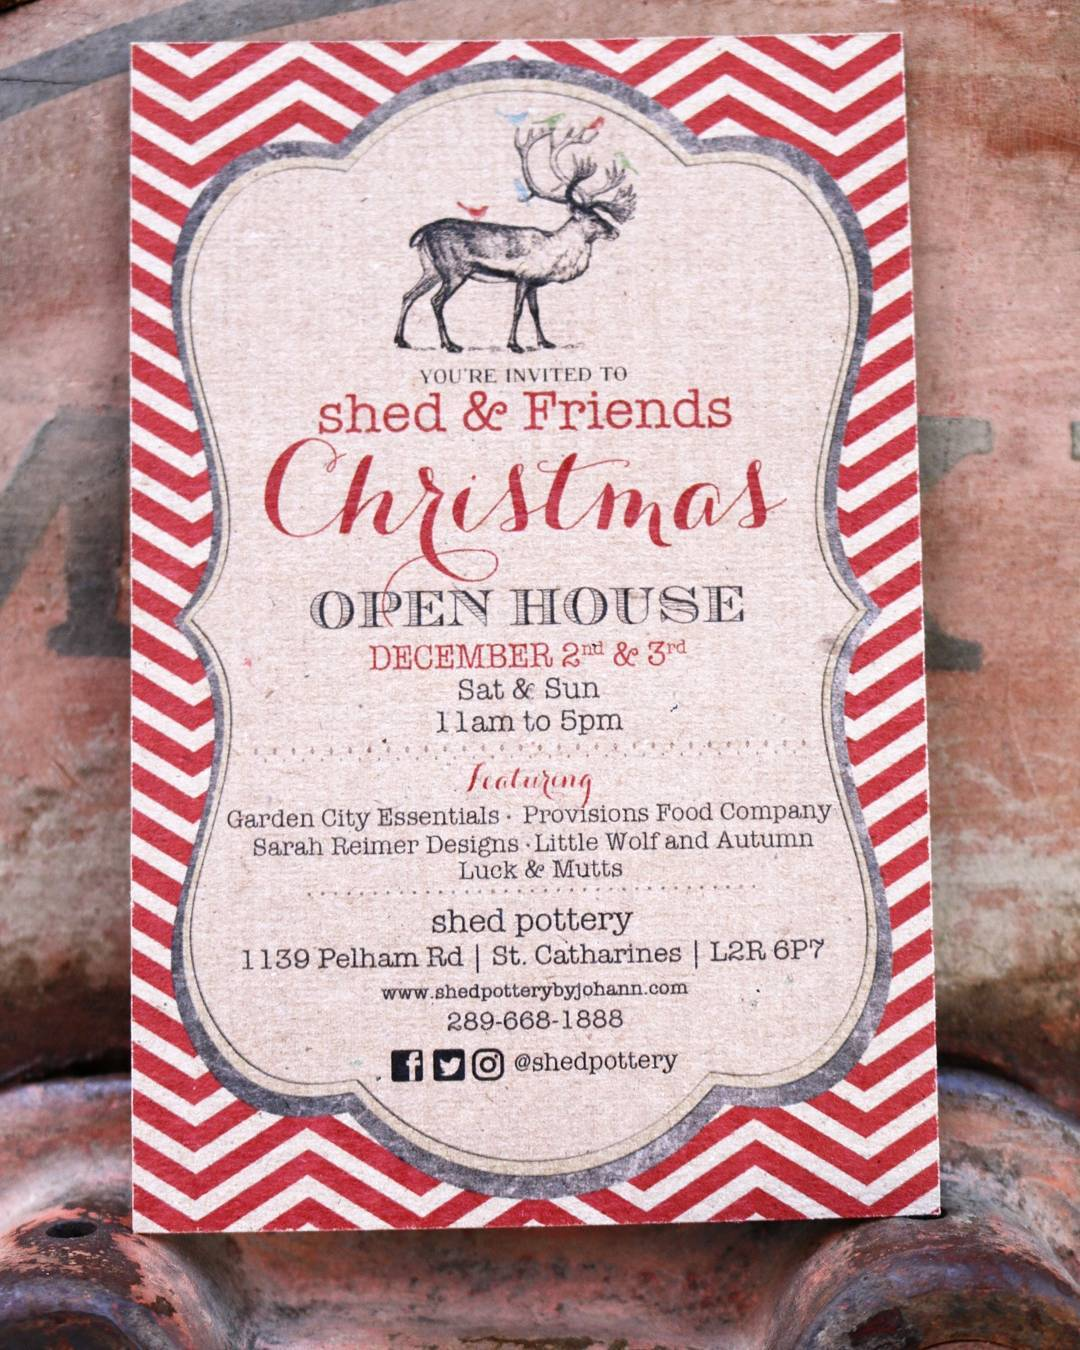 Shed Pottery  & Friends Christmas Open House